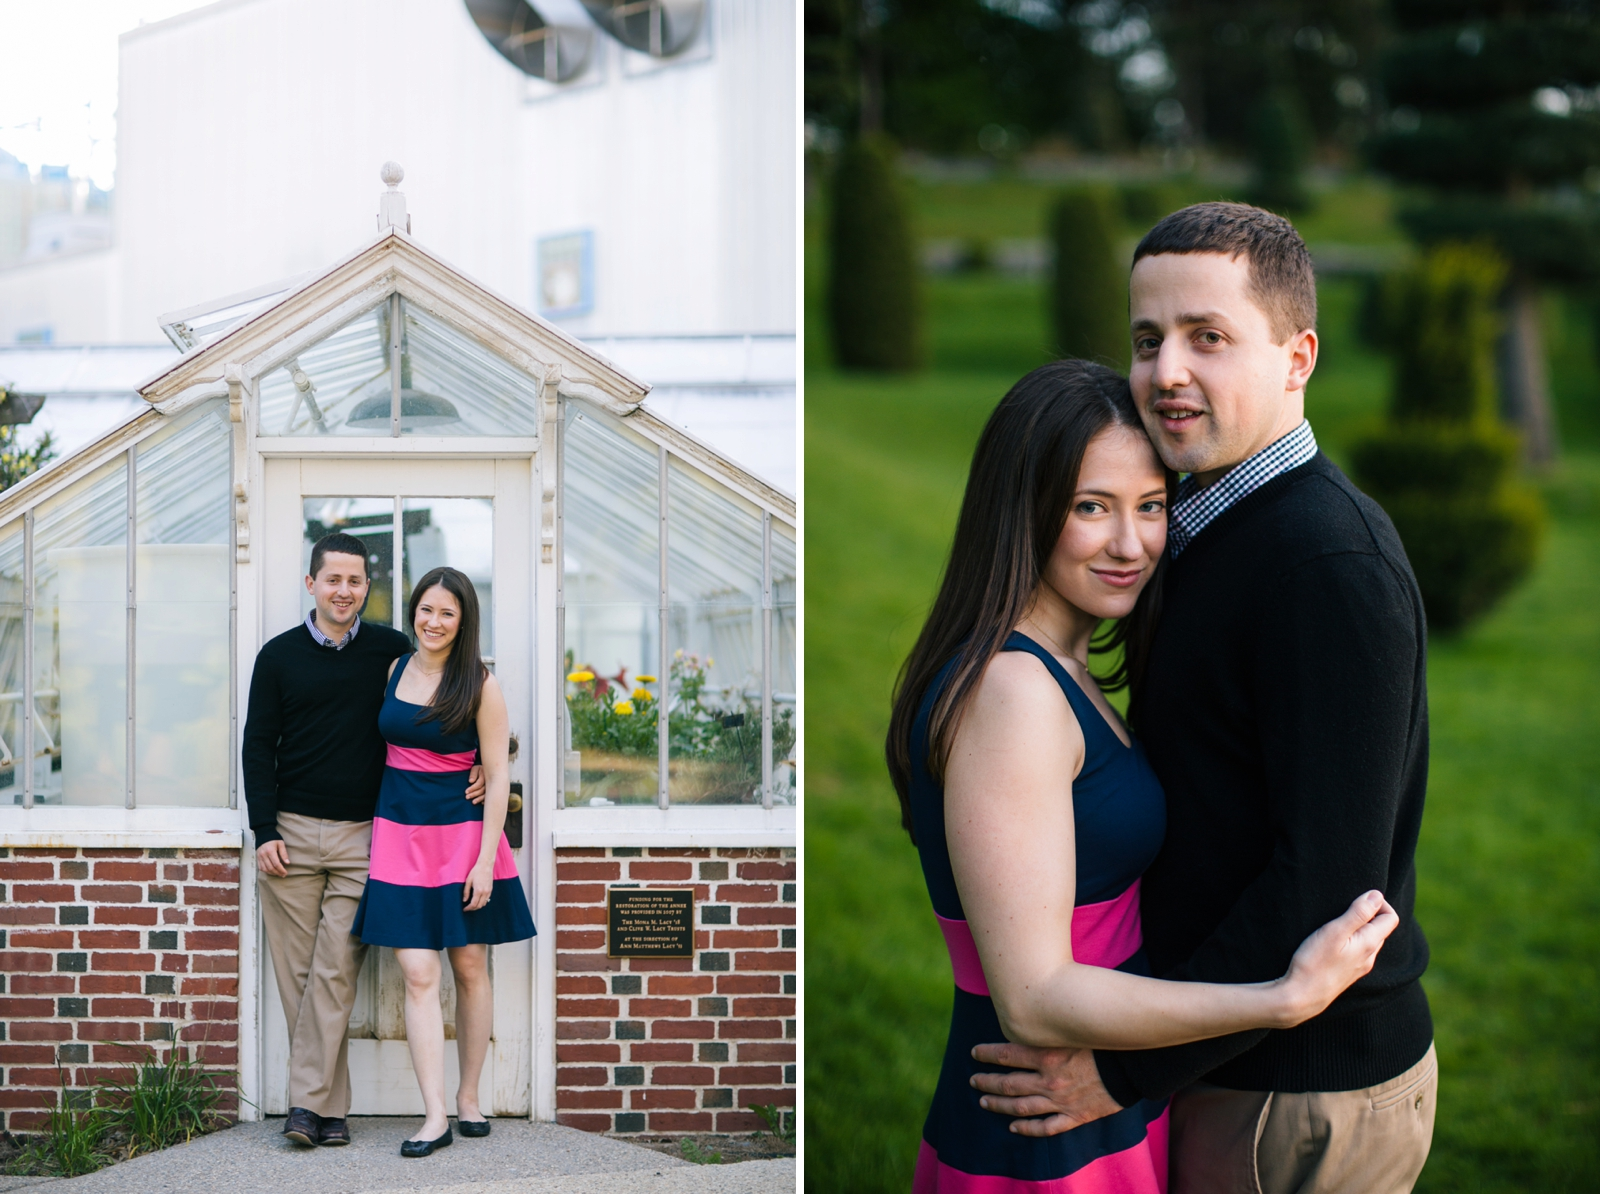 Couple stand in front of greenhouse, intimate engagement portrait in a garden